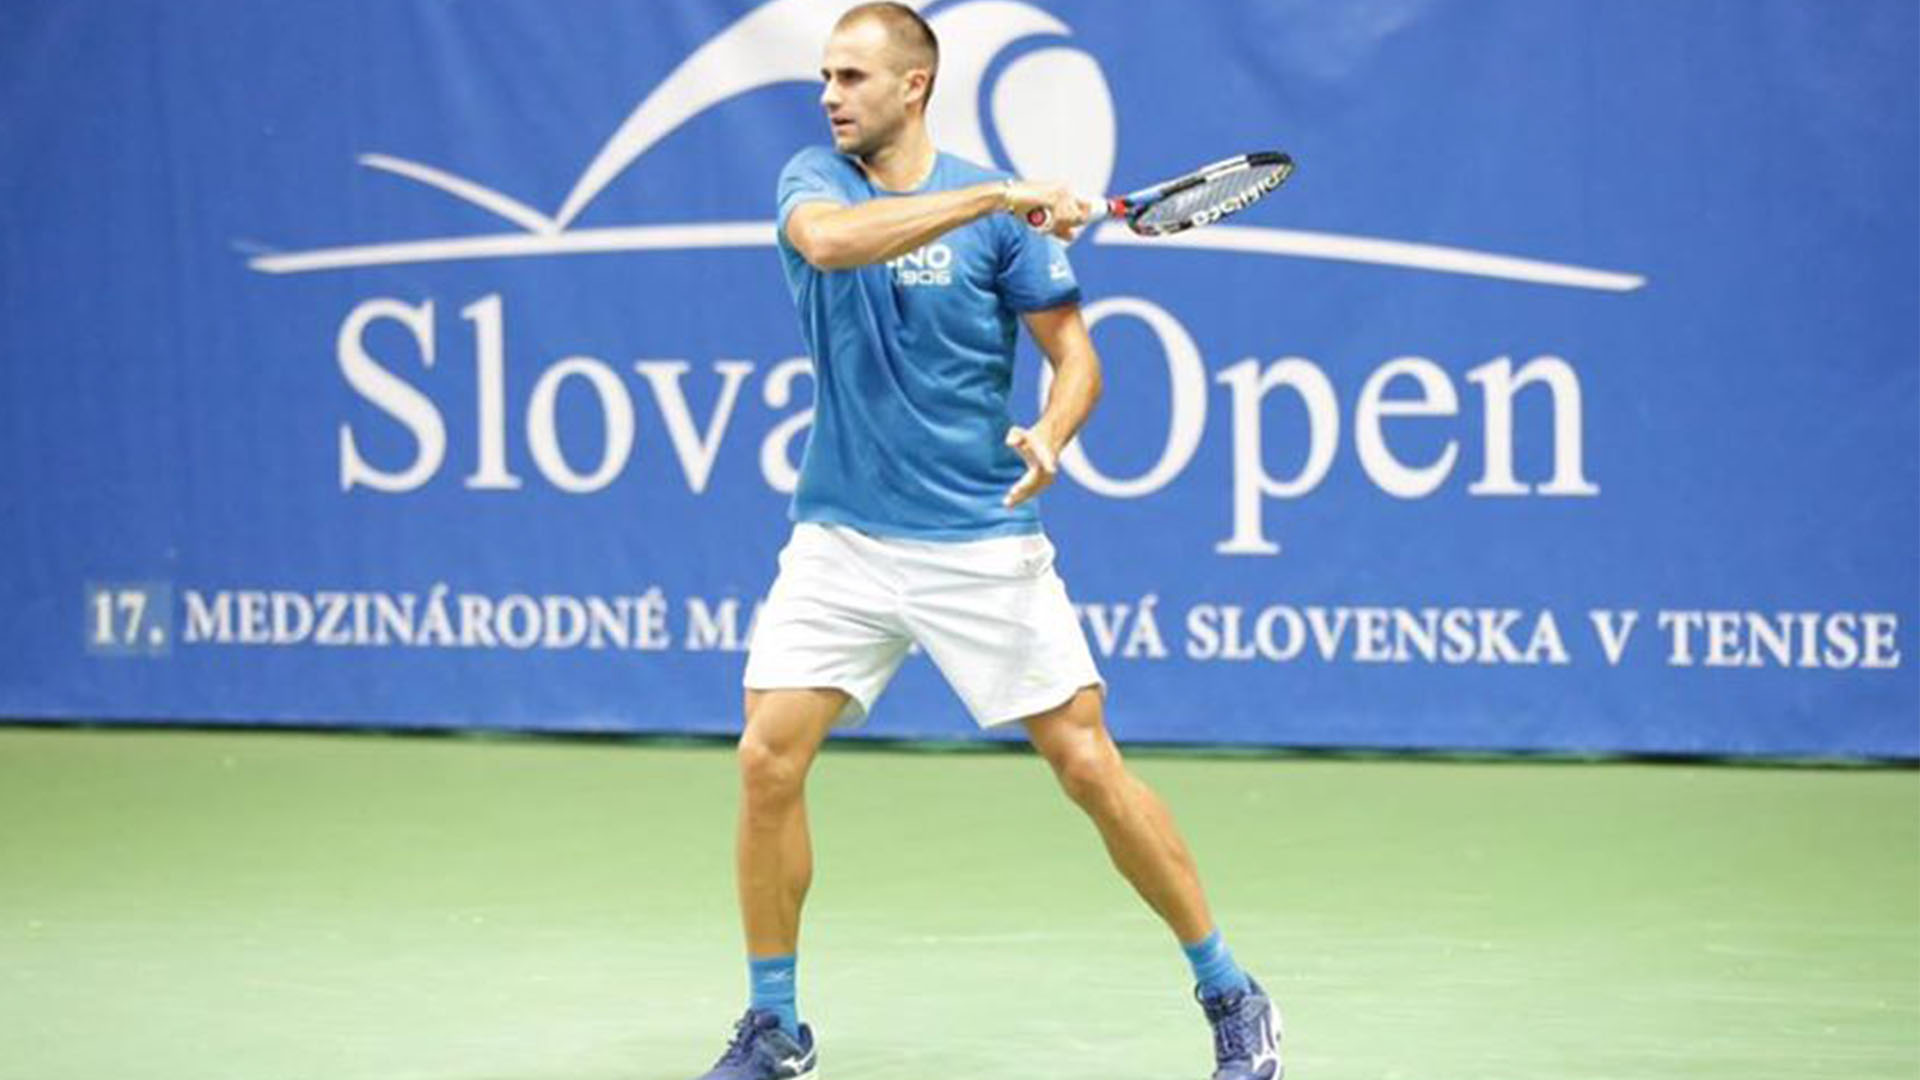 Marius Copil, Slovak Open